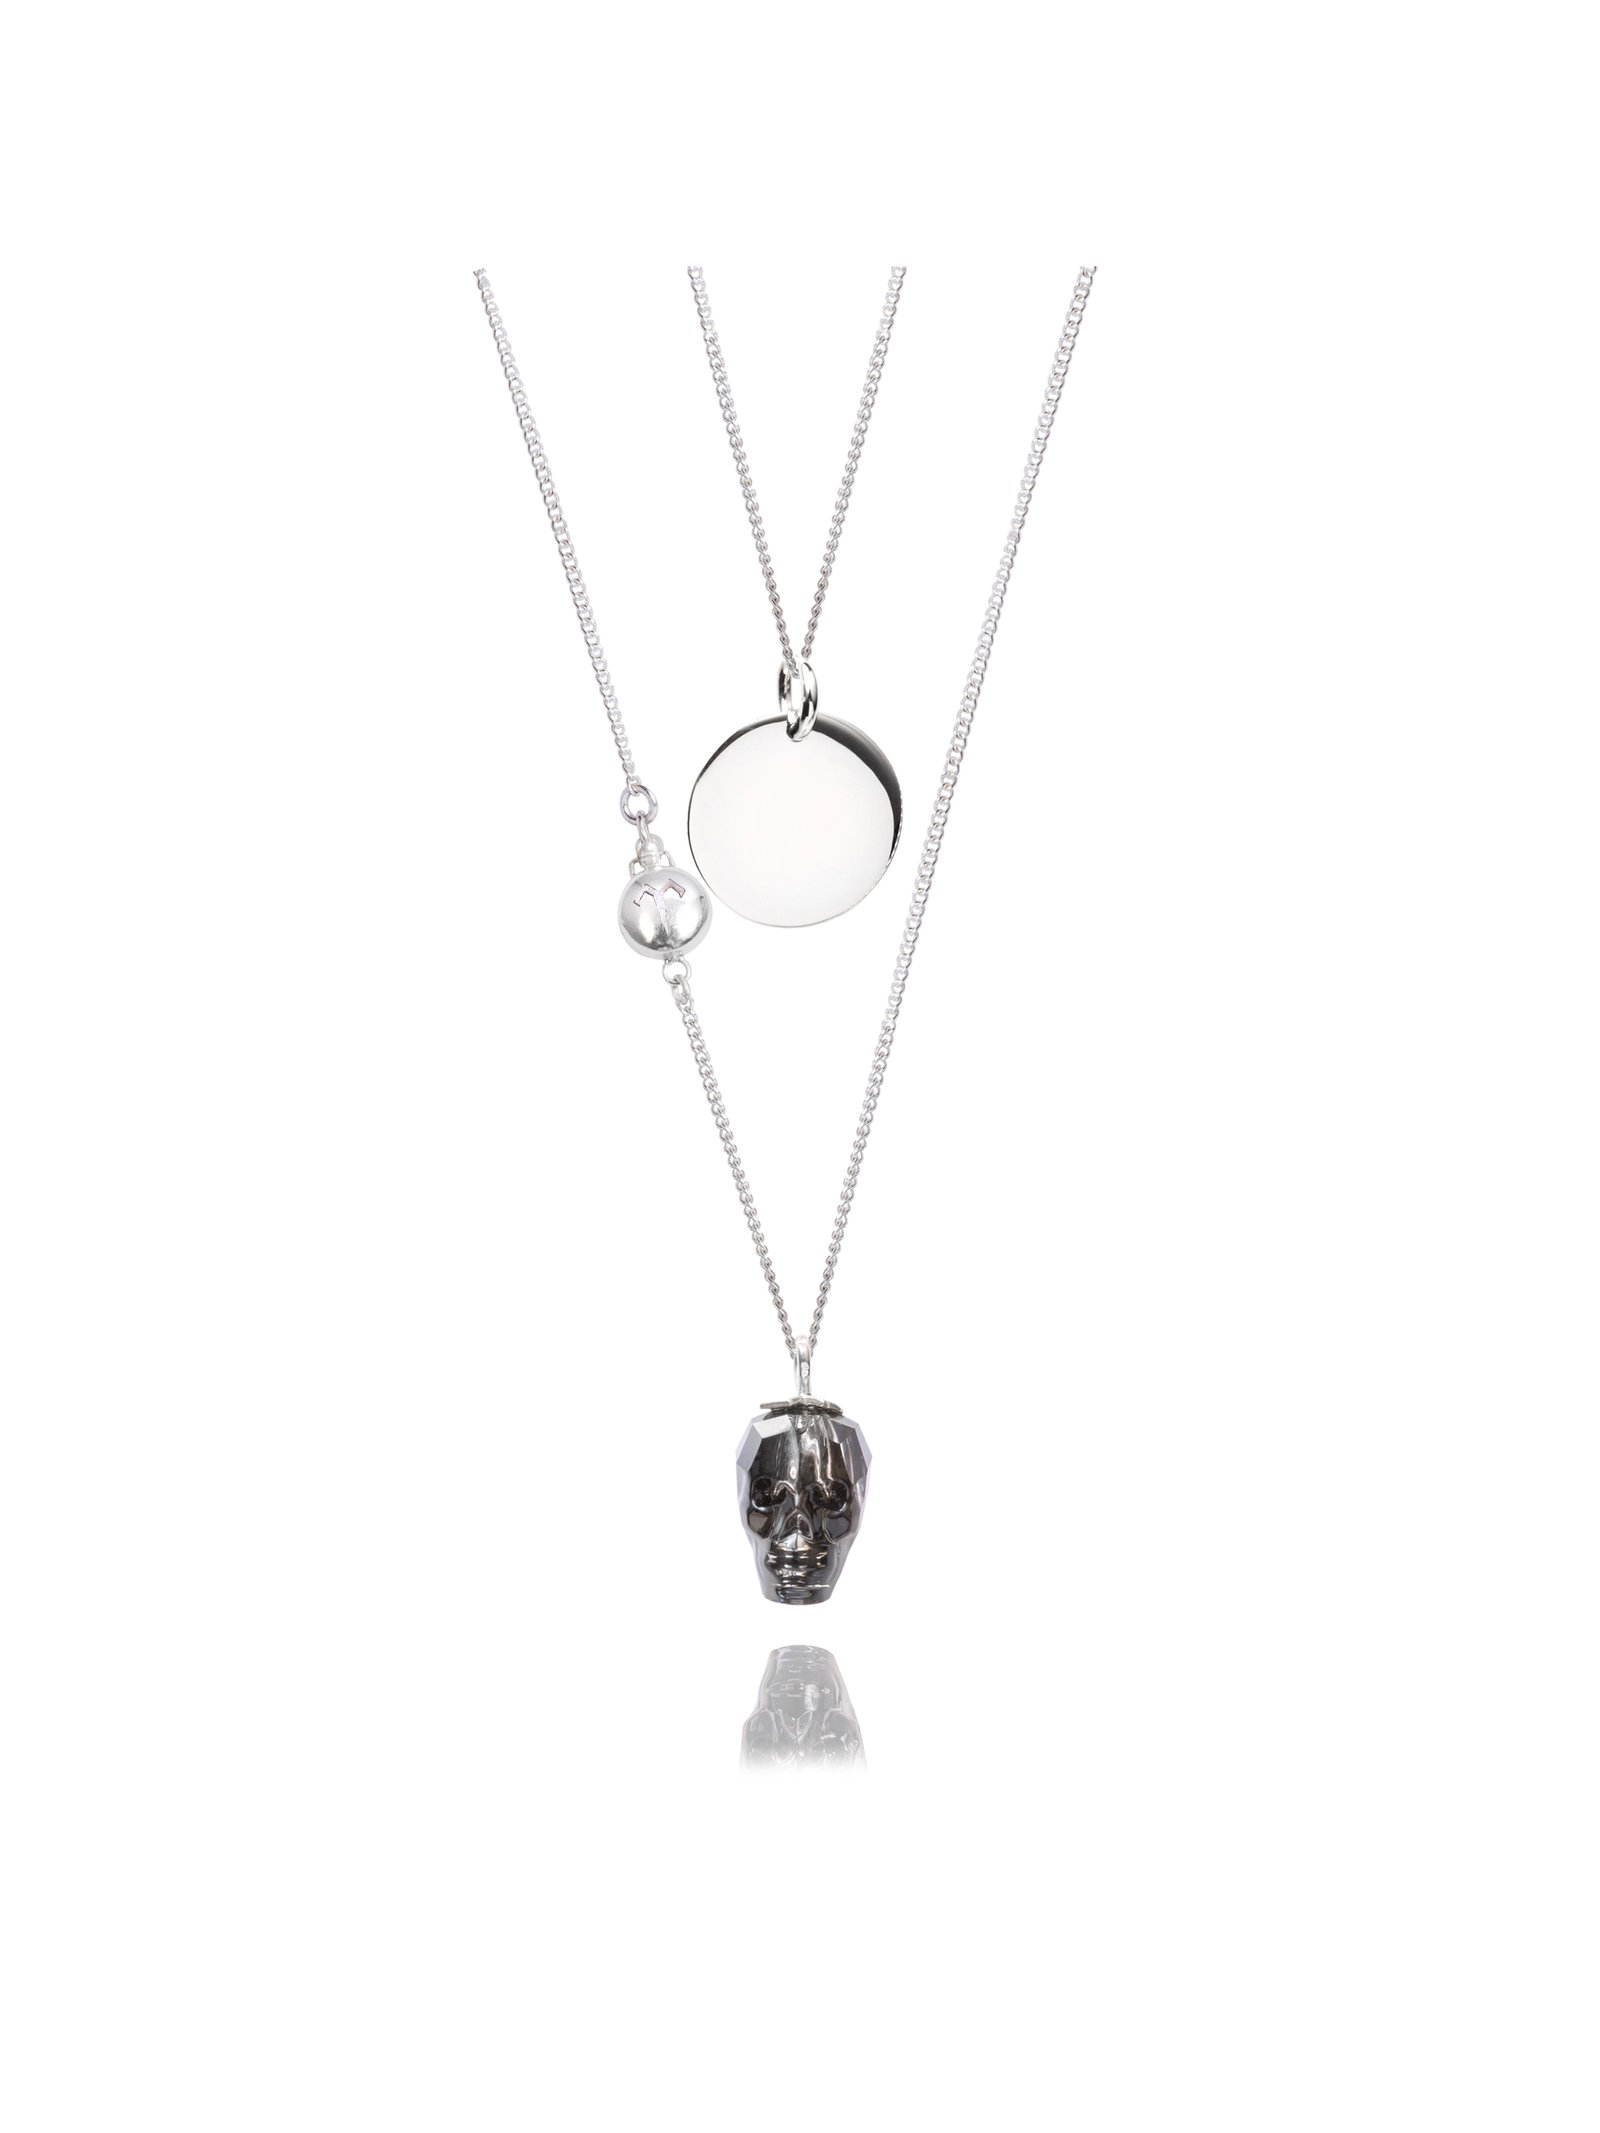 Ternary London DARK PARADISE SWAROVSKI SKULL & STERLING SILVER COIN NECKLACE